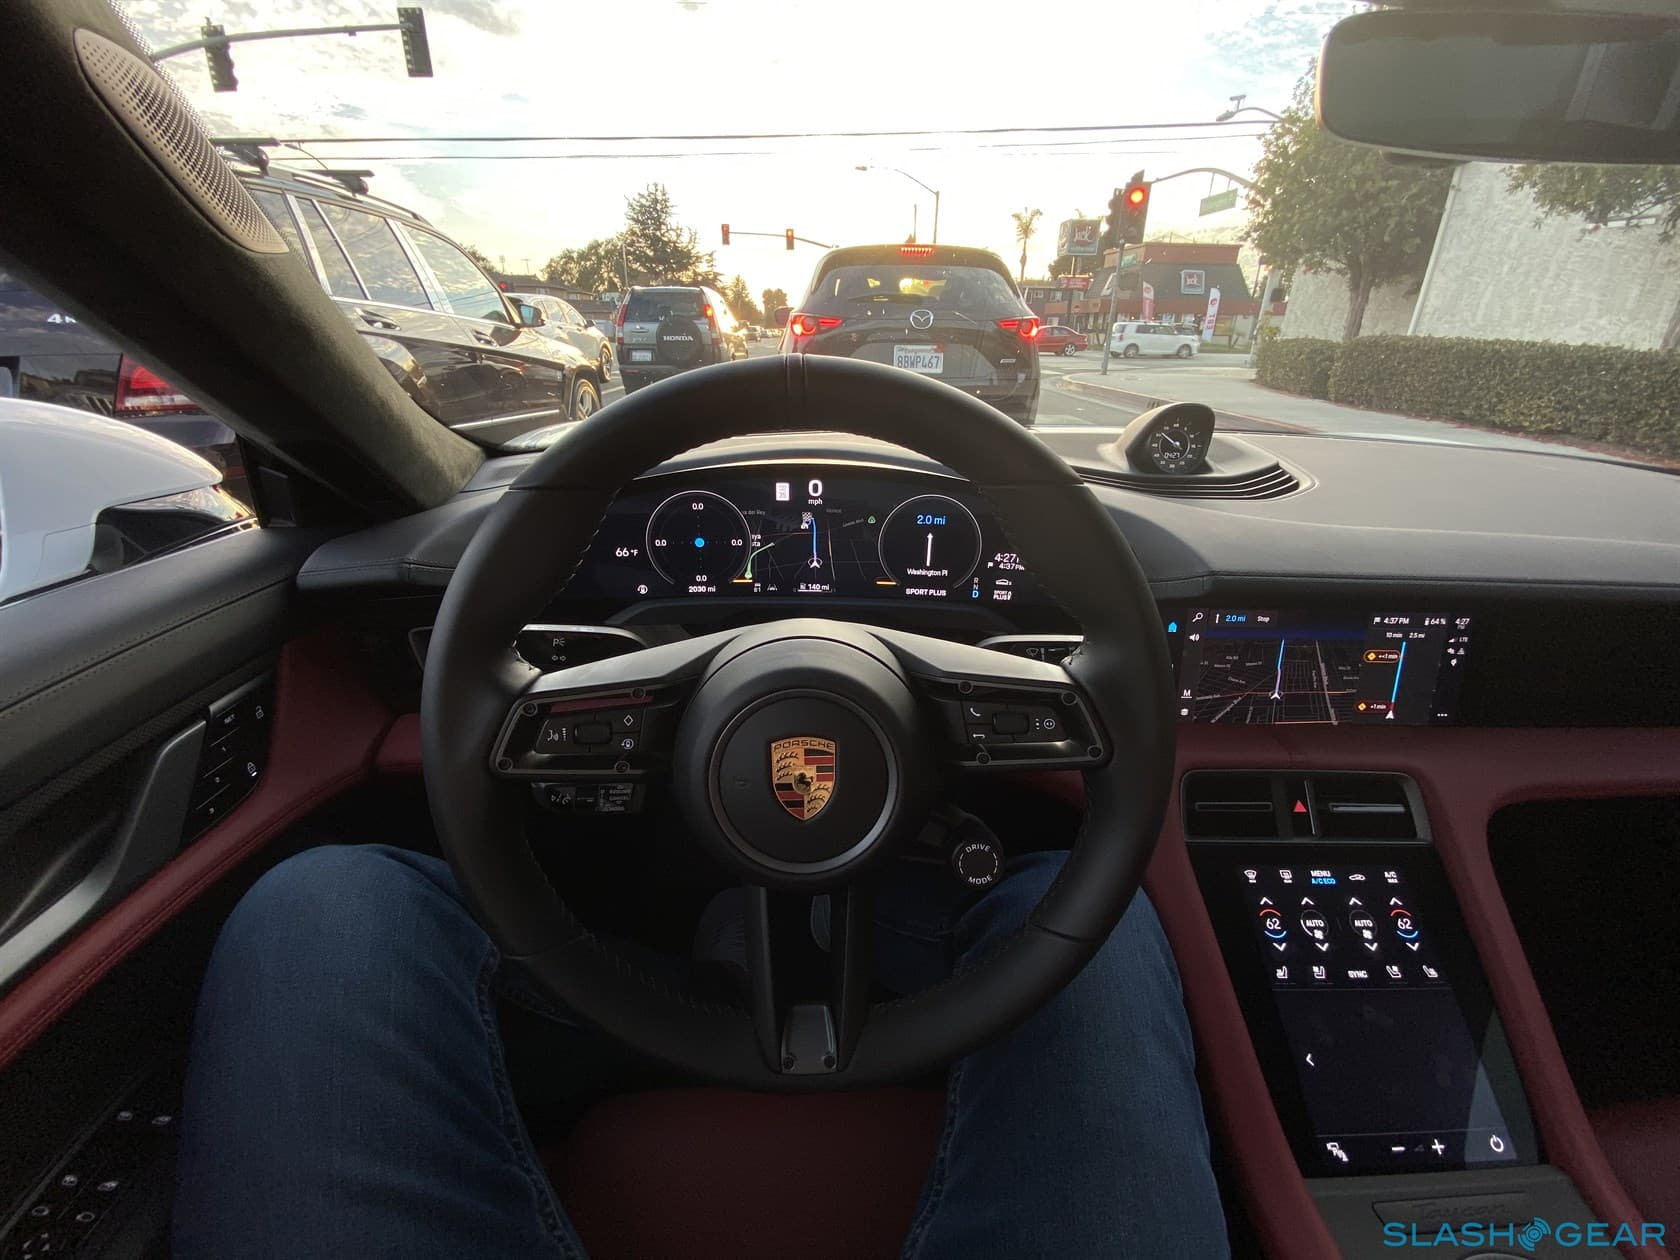 2020 porsche taycan turbo s first drive review electric excellence slashgear 2020 porsche taycan turbo s first drive